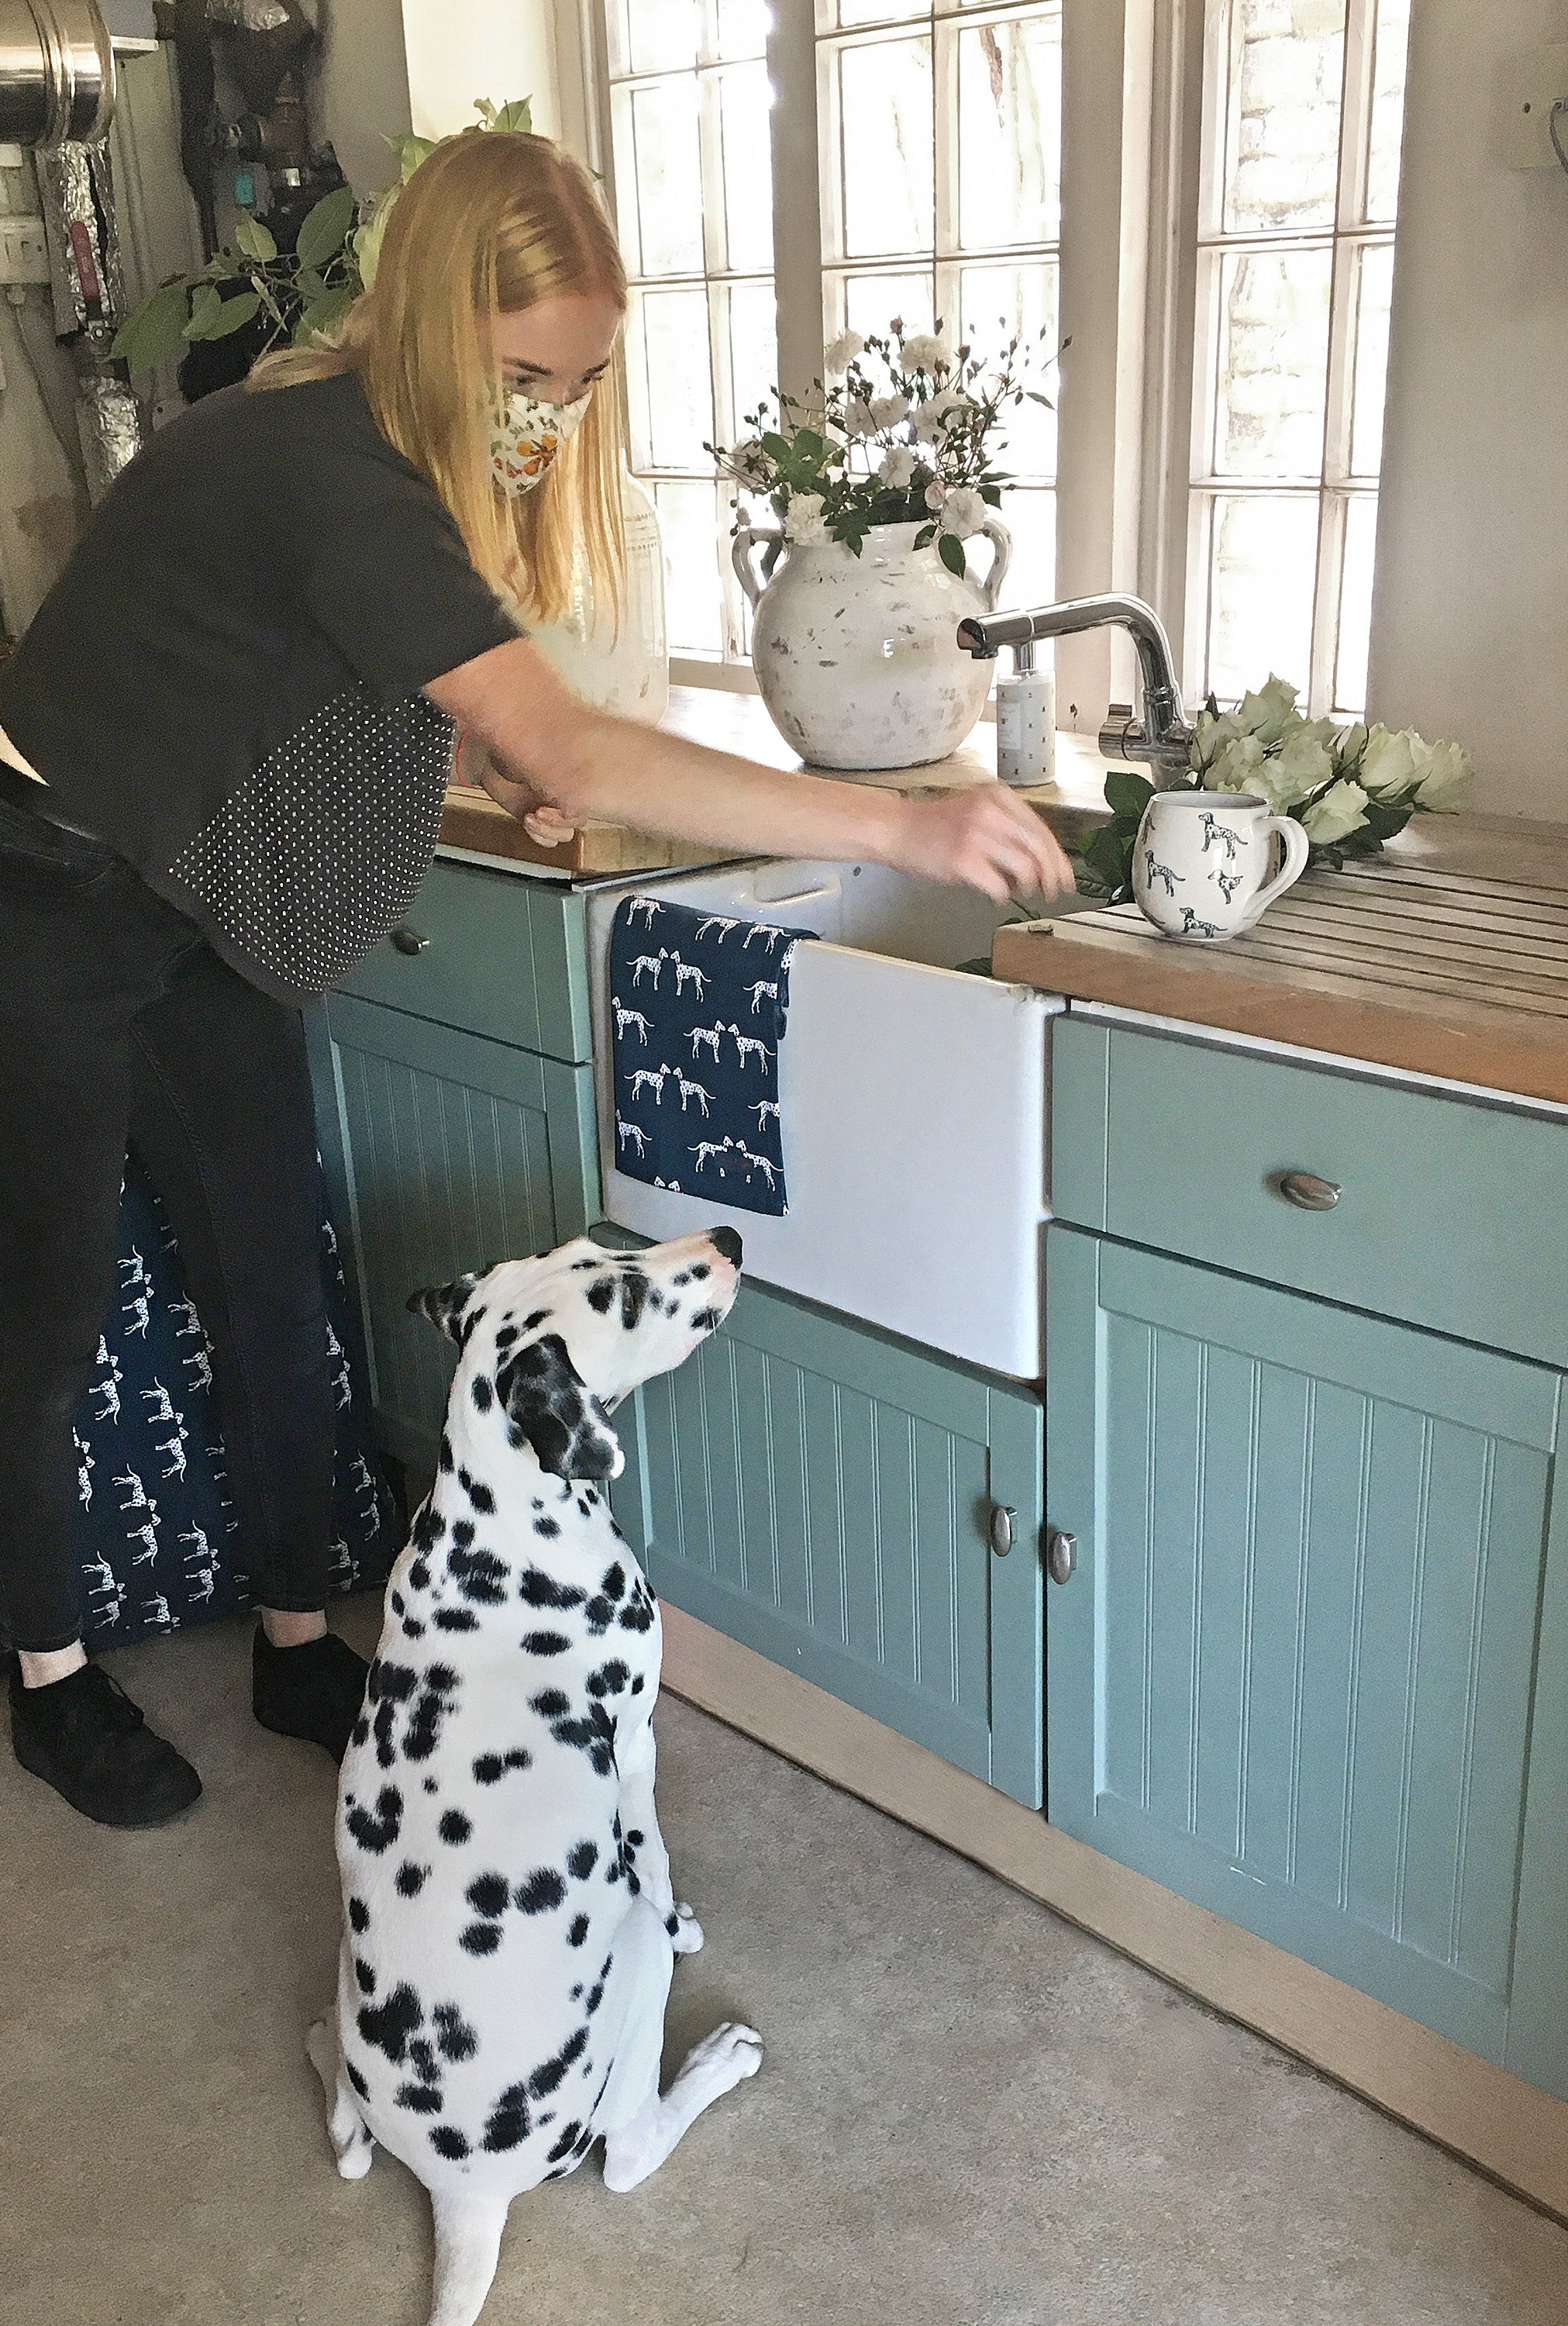 Read all about Sophie Allport's Dalmatian Photoshoot